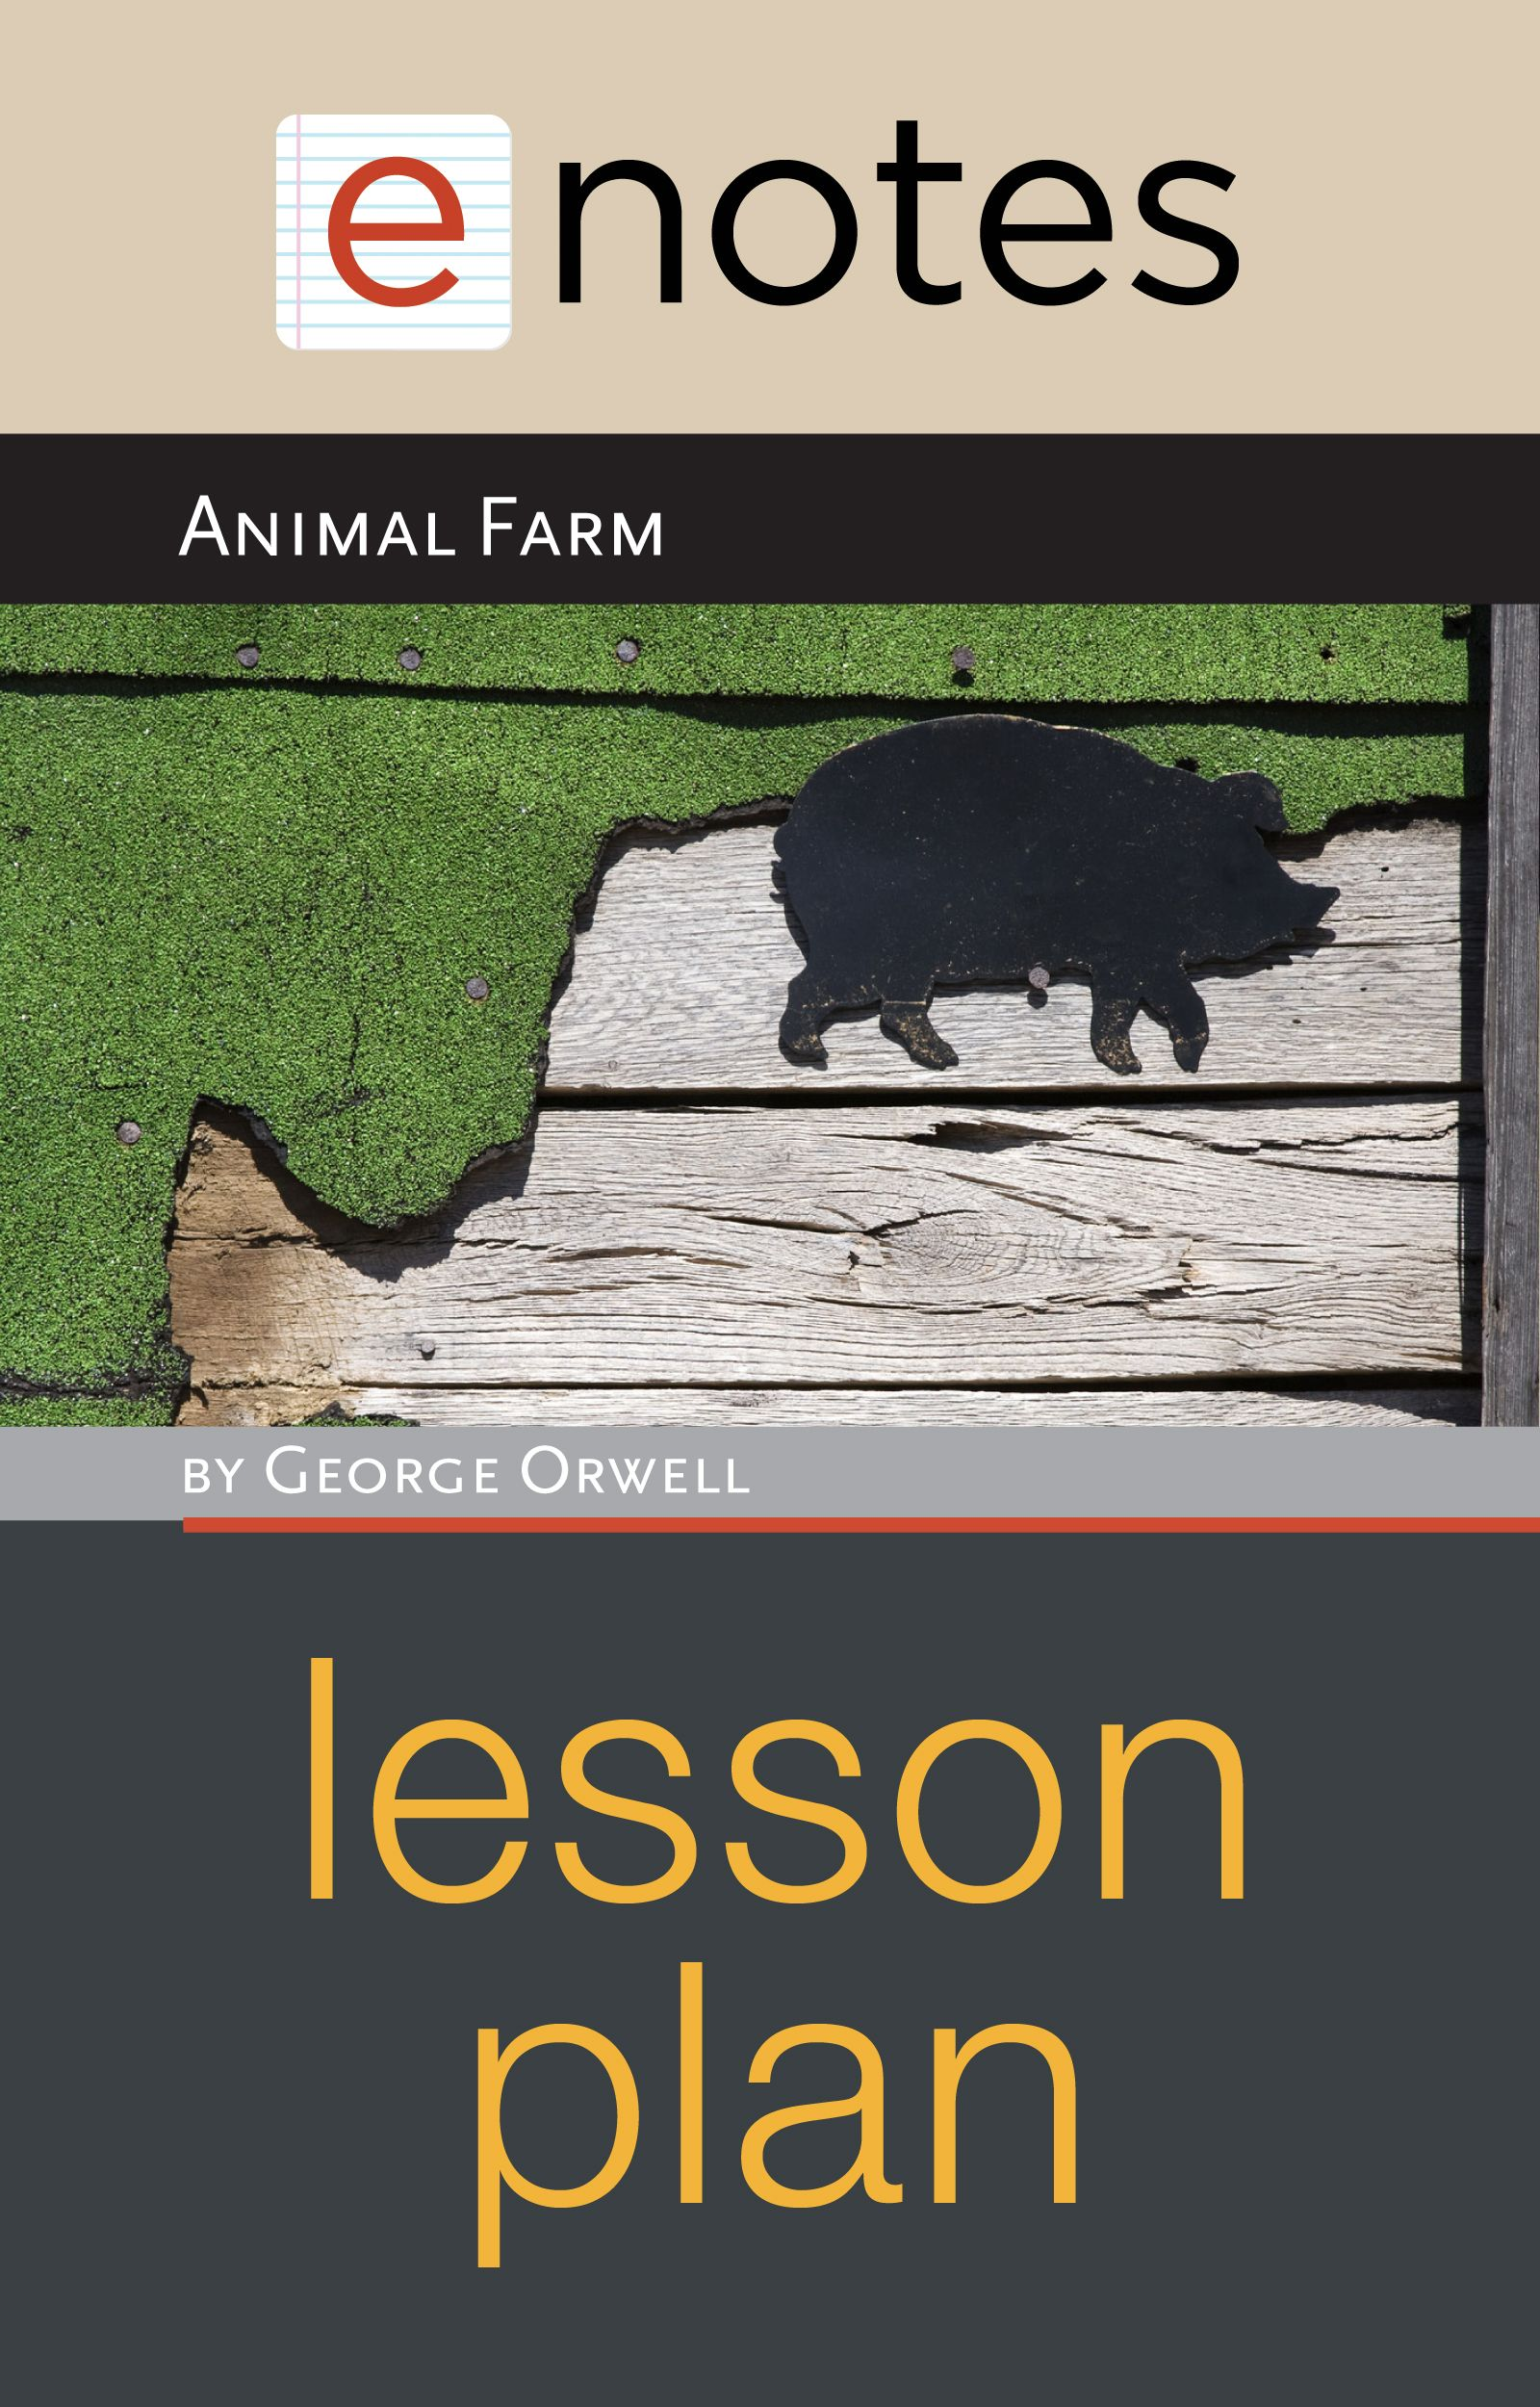 an analysis of farm by george orwell George orwell's animal farm is undeniably one of the best short novels ever written in the english language it is a deceptively simple tale.